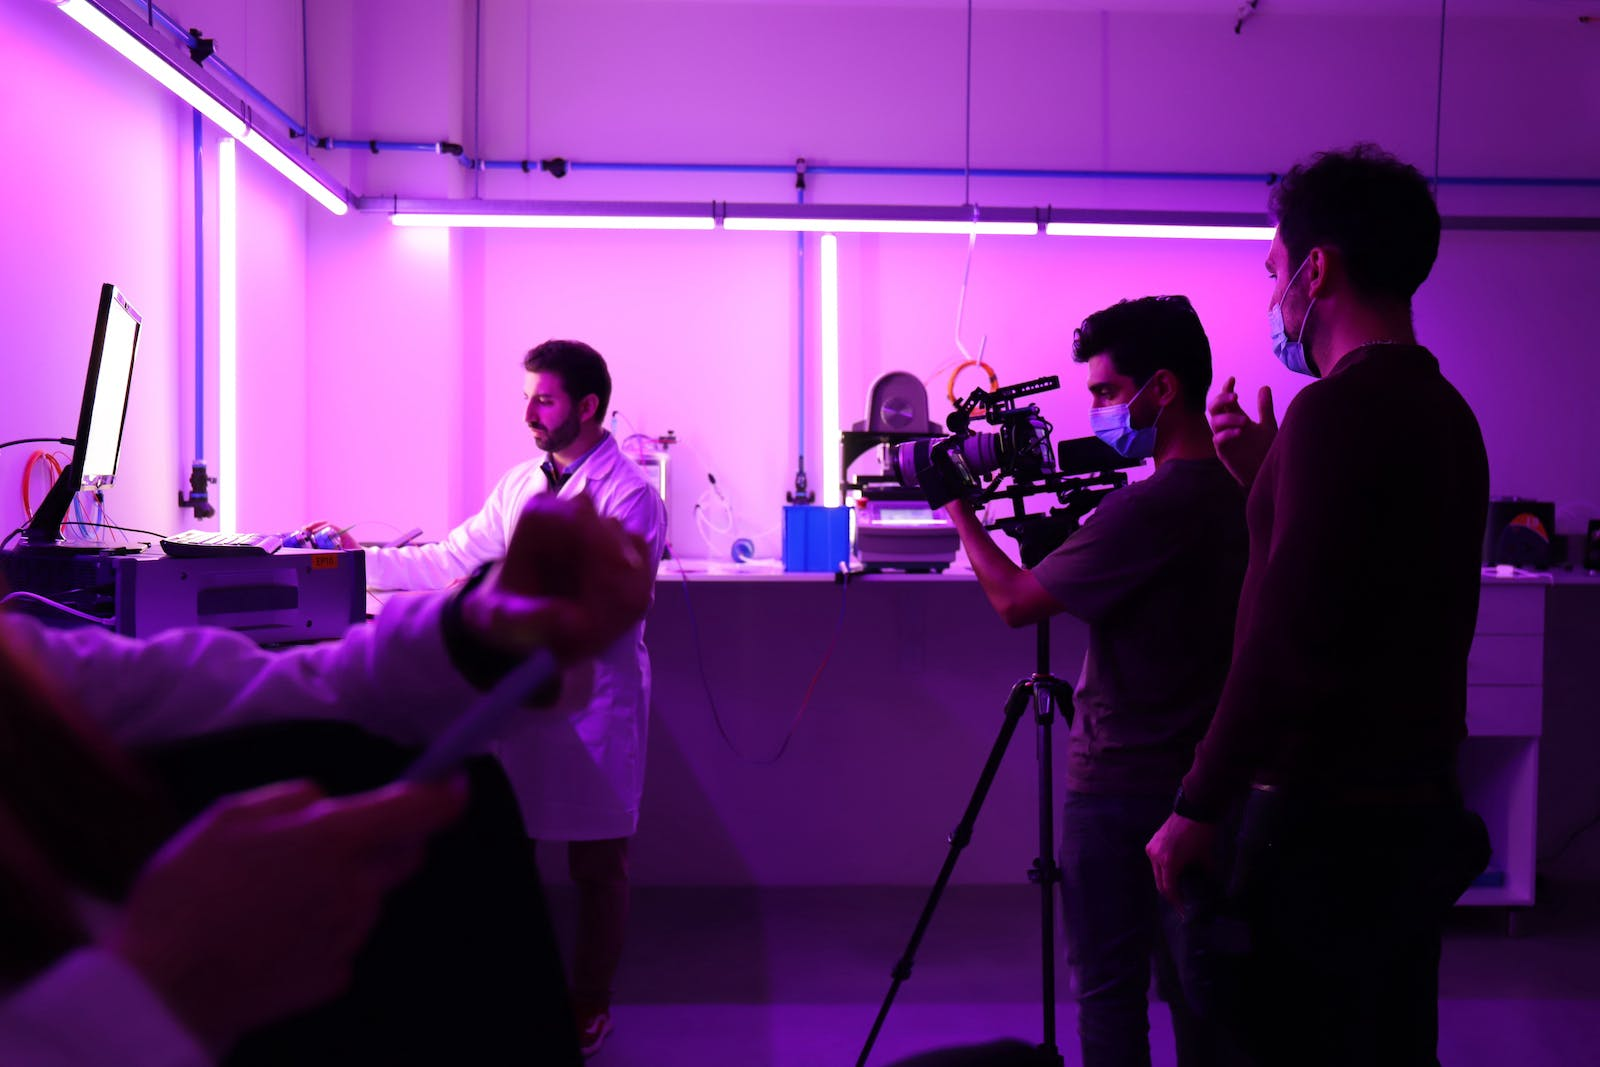 HIGGS Making-of Commercial Film